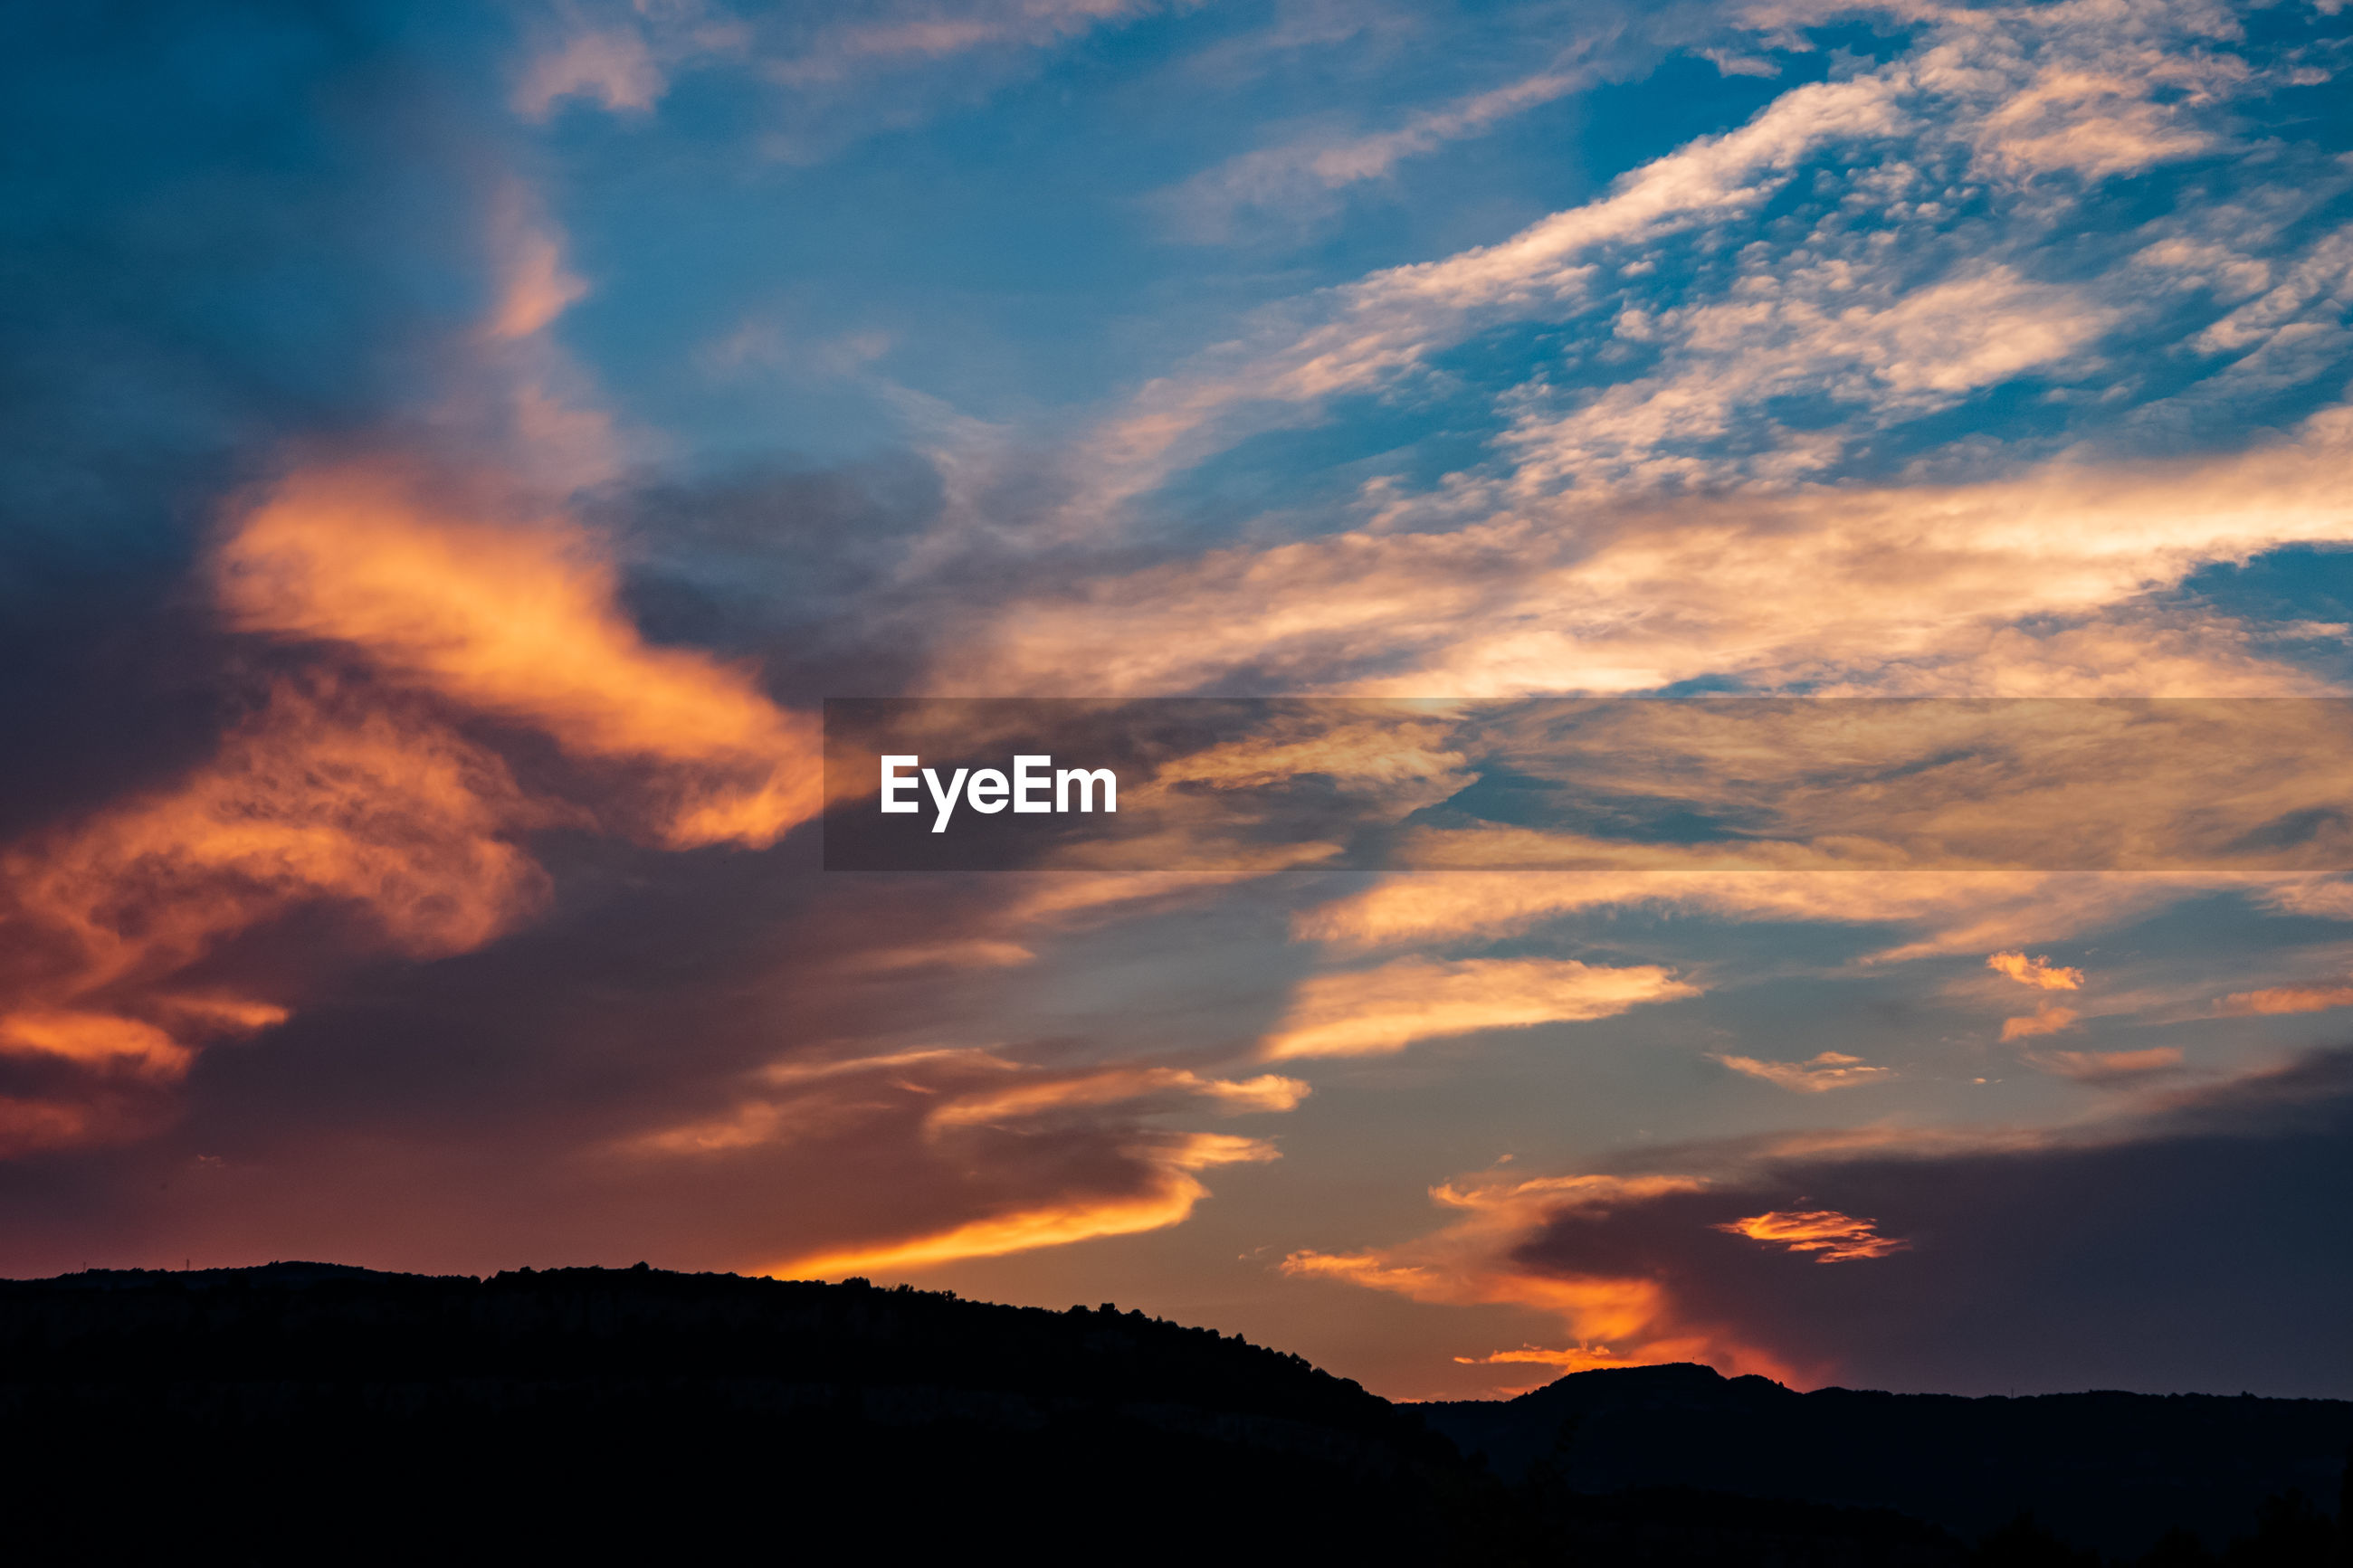 LOW ANGLE VIEW OF DRAMATIC SKY OVER SILHOUETTE MOUNTAINS